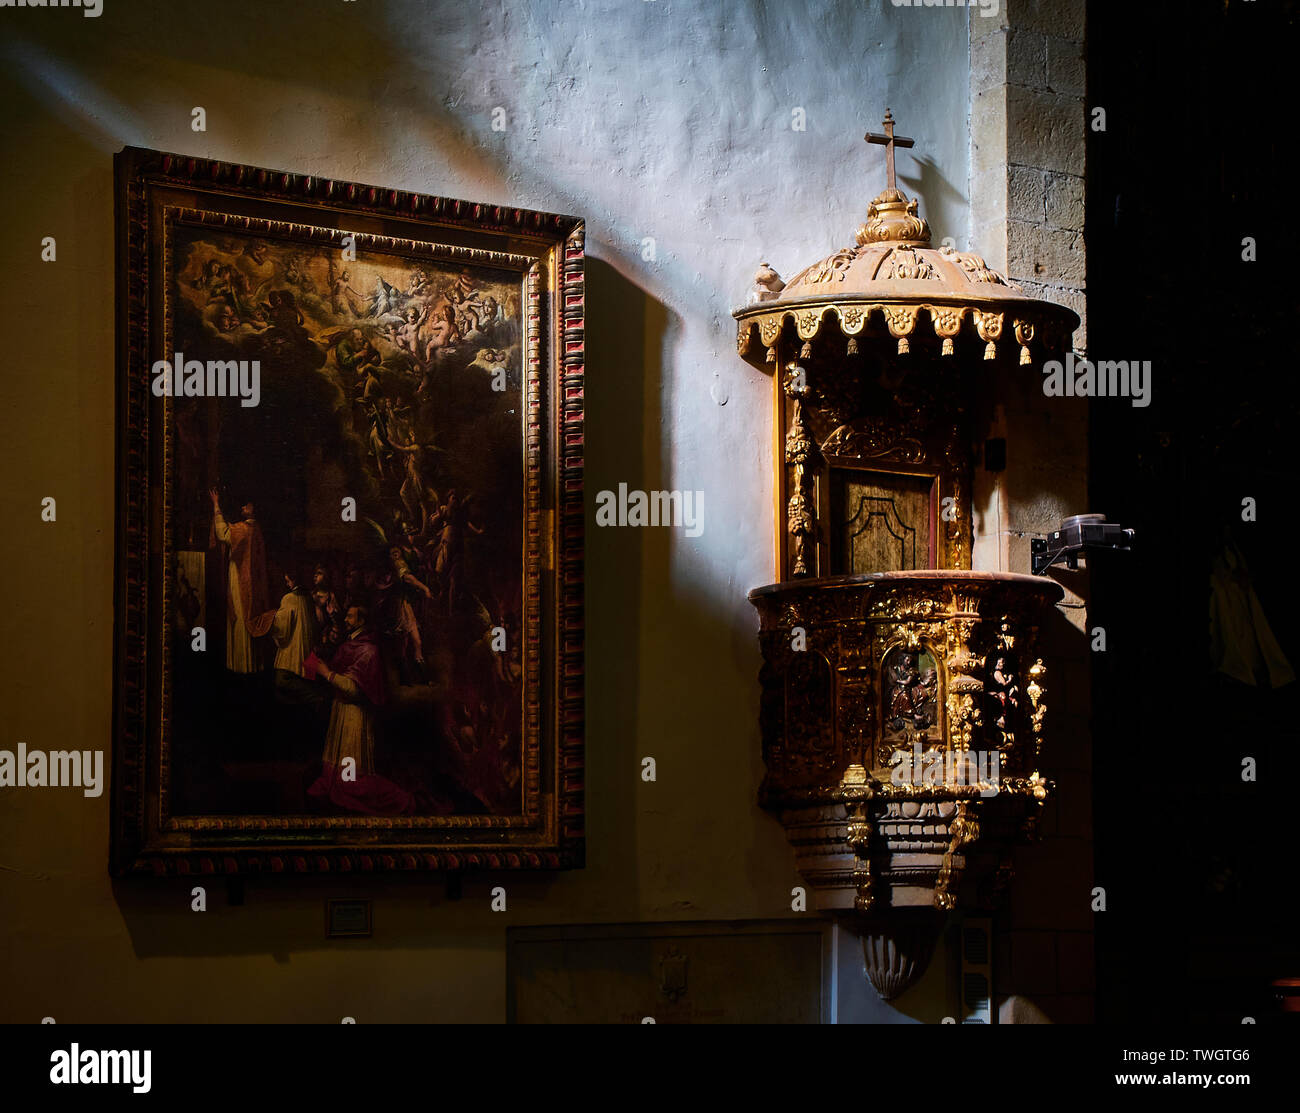 Pulpit of The Church of San Juan Bautista, located in the fishing village of Pasajes de San Juan. Gipuzkoa, Basque country, Spain. - Stock Image